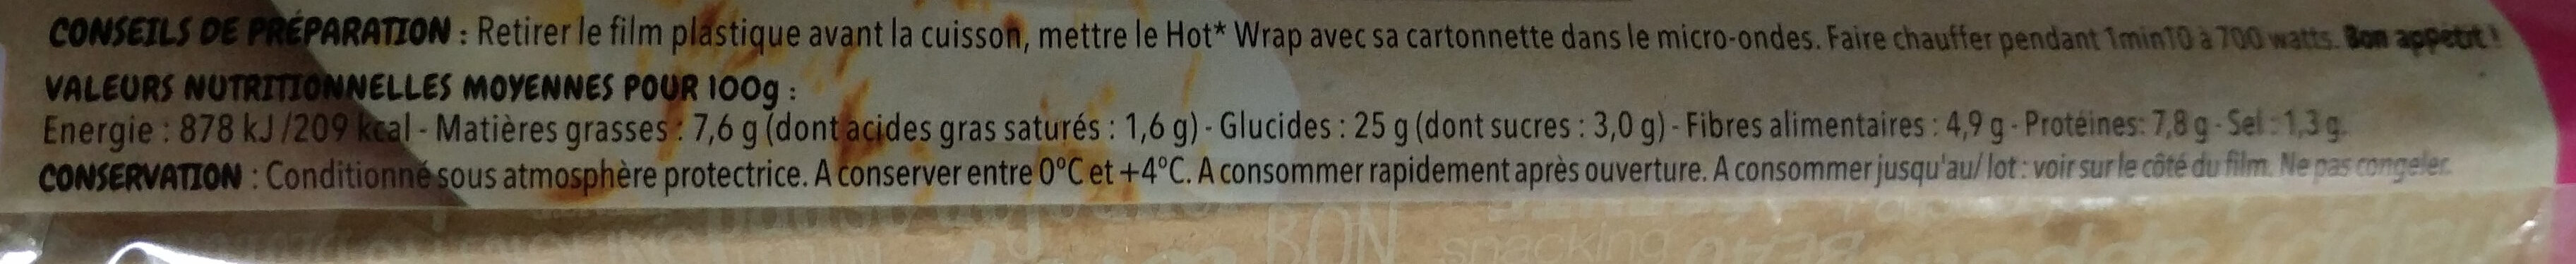 Hot wrap mexicaine - Voedingswaarden - fr